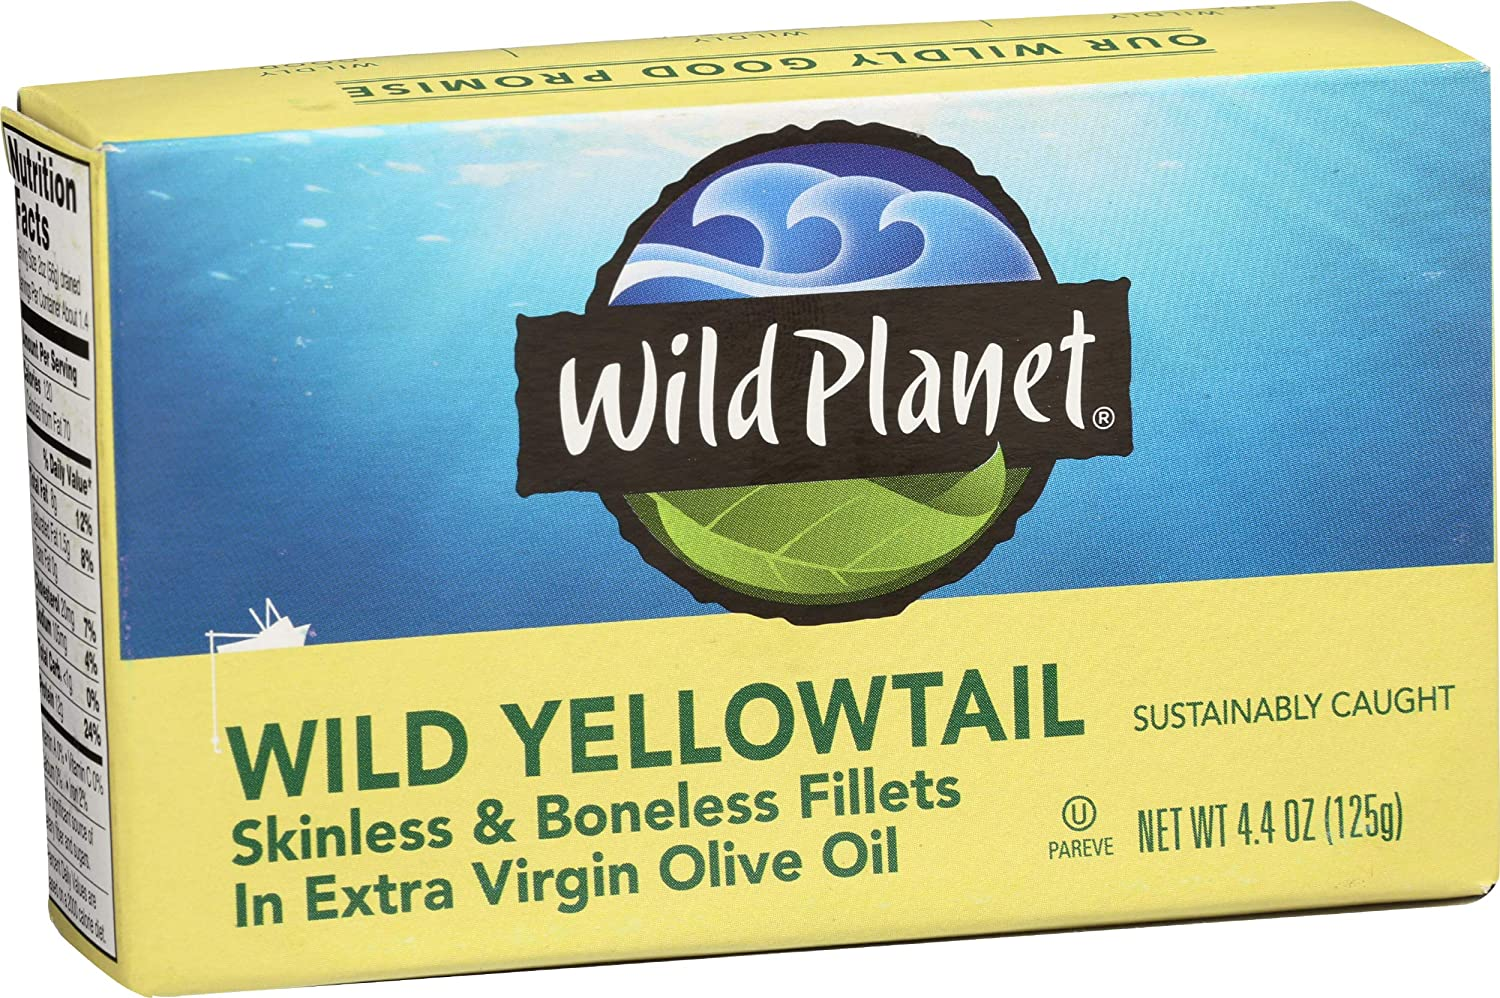 Wild Planet Wild Yellowtail Fillets in Organic Extra Virgin Olive Oil, Skinless & Boneless, 4.4 Ounce